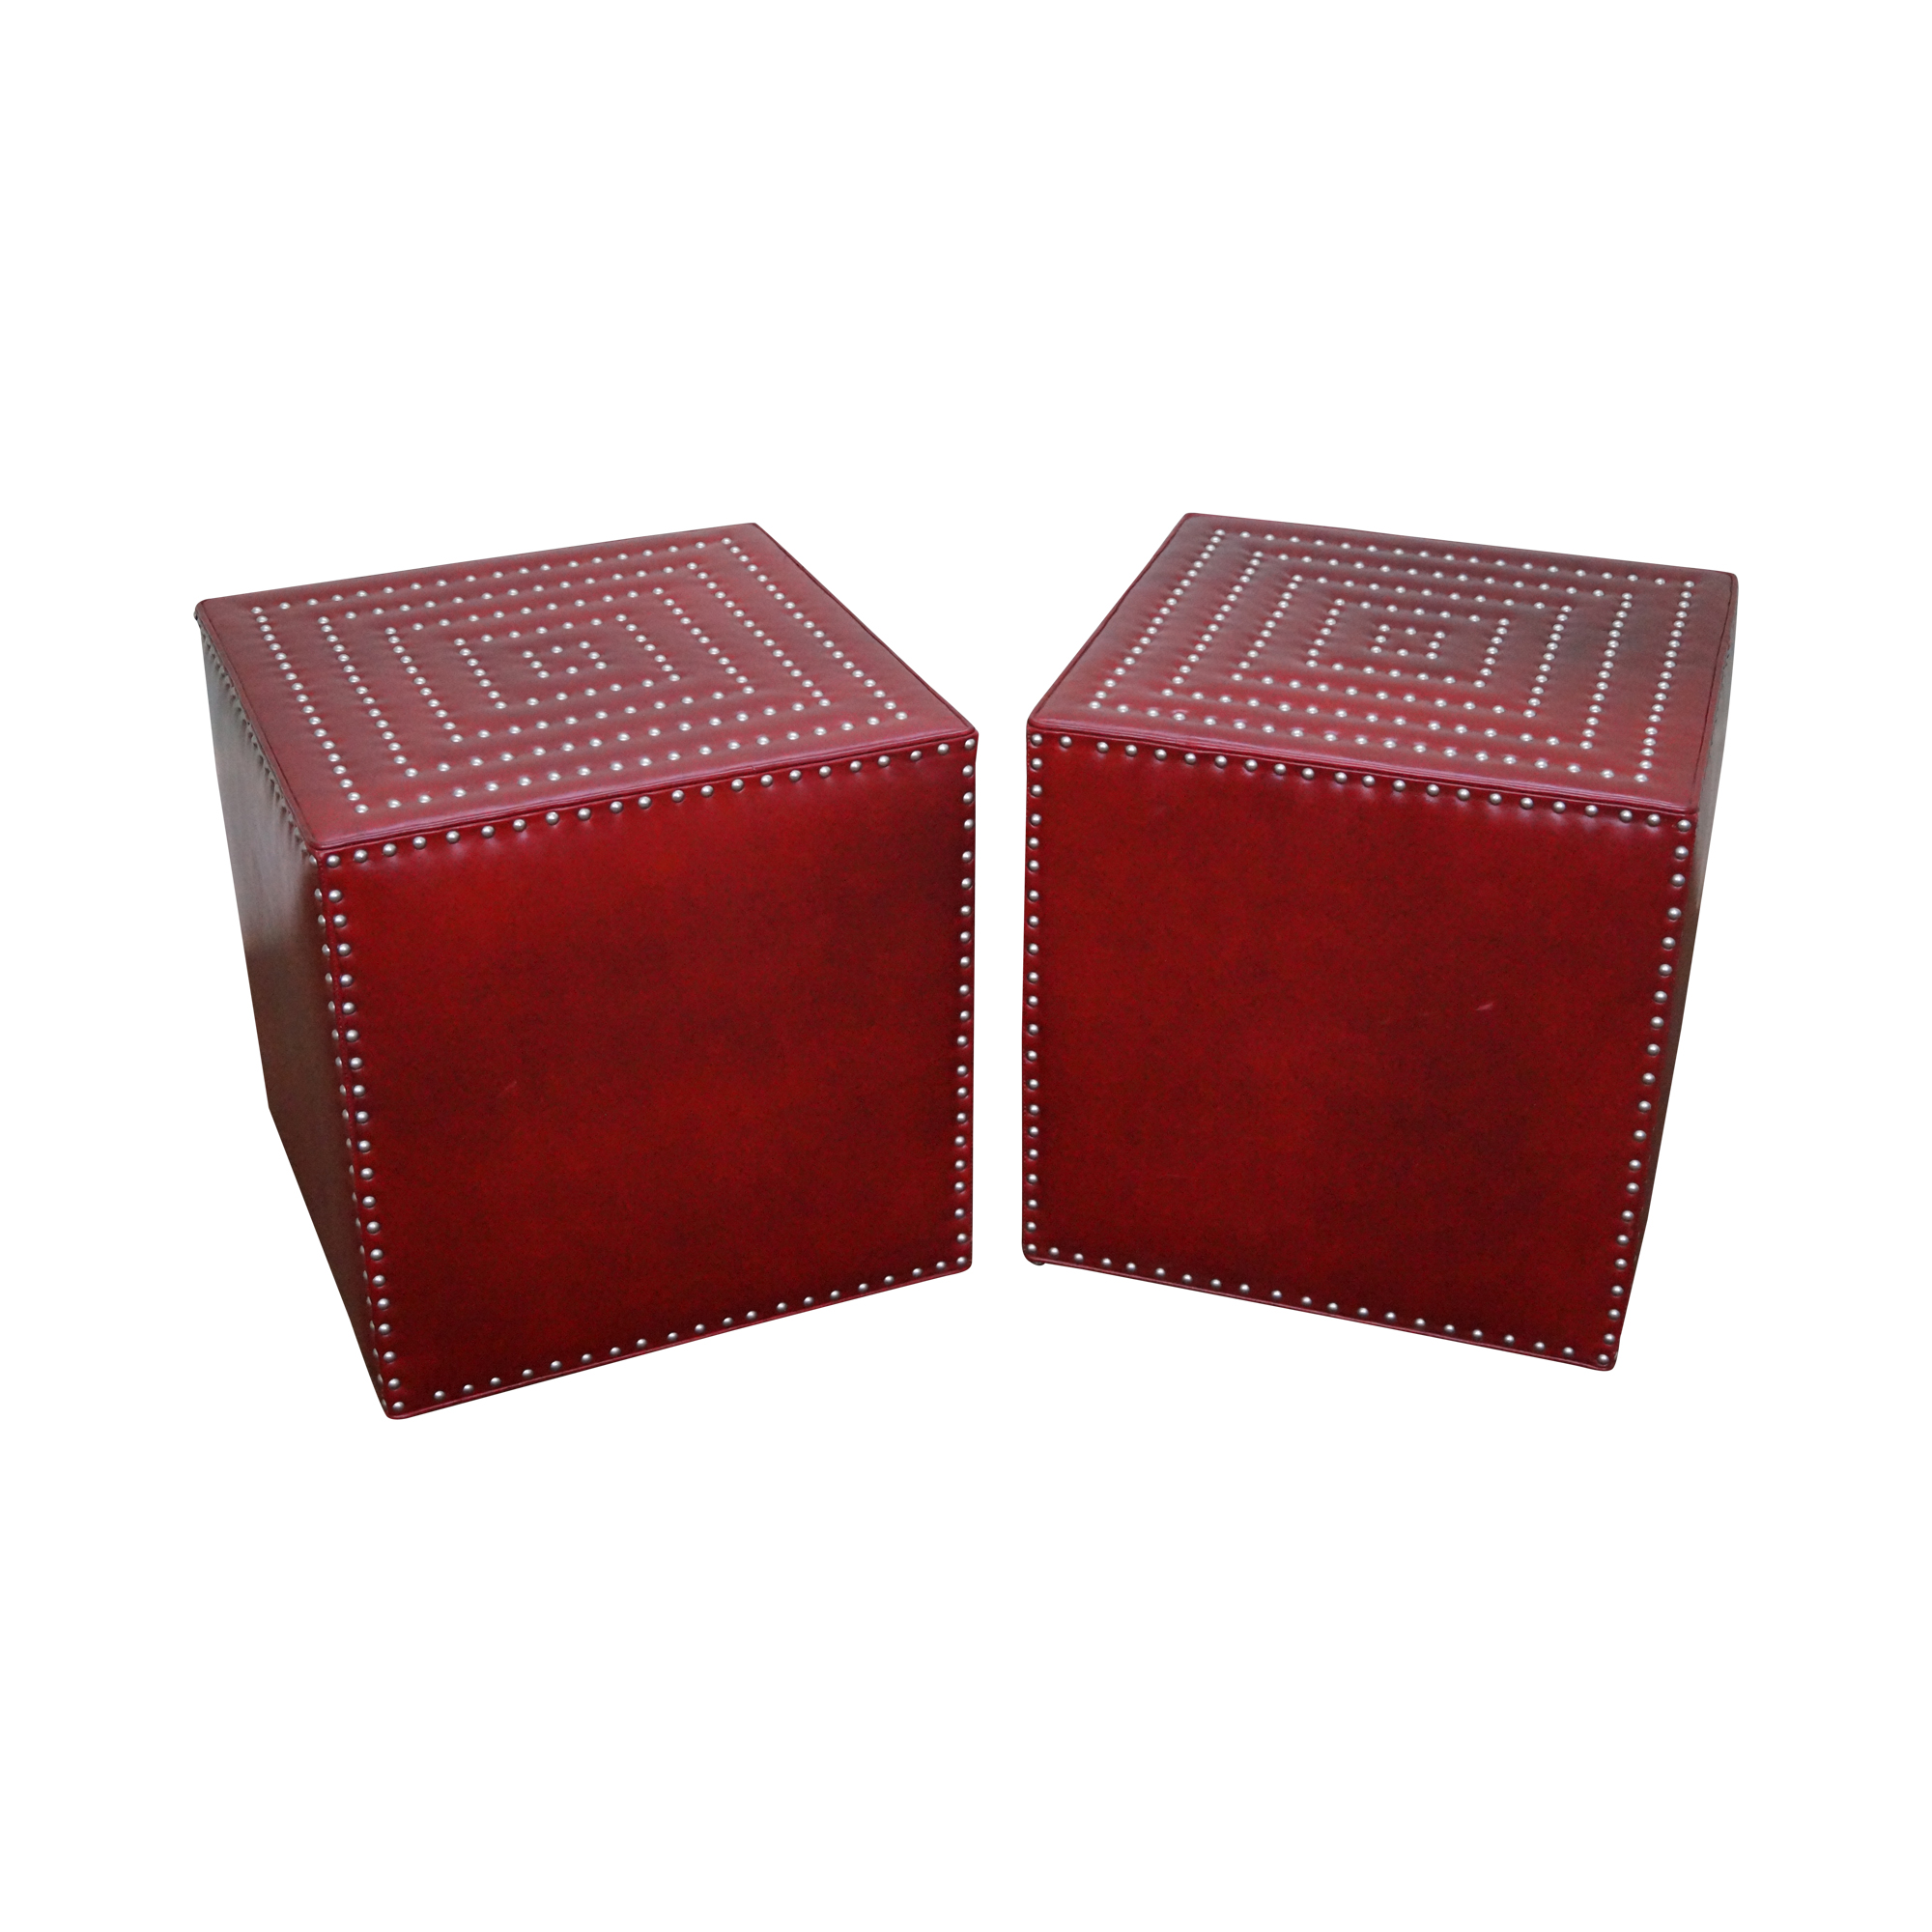 lee industries red leather cube ottomans  a pair  chairish - image of lee industries red leather cube ottomans  a pair